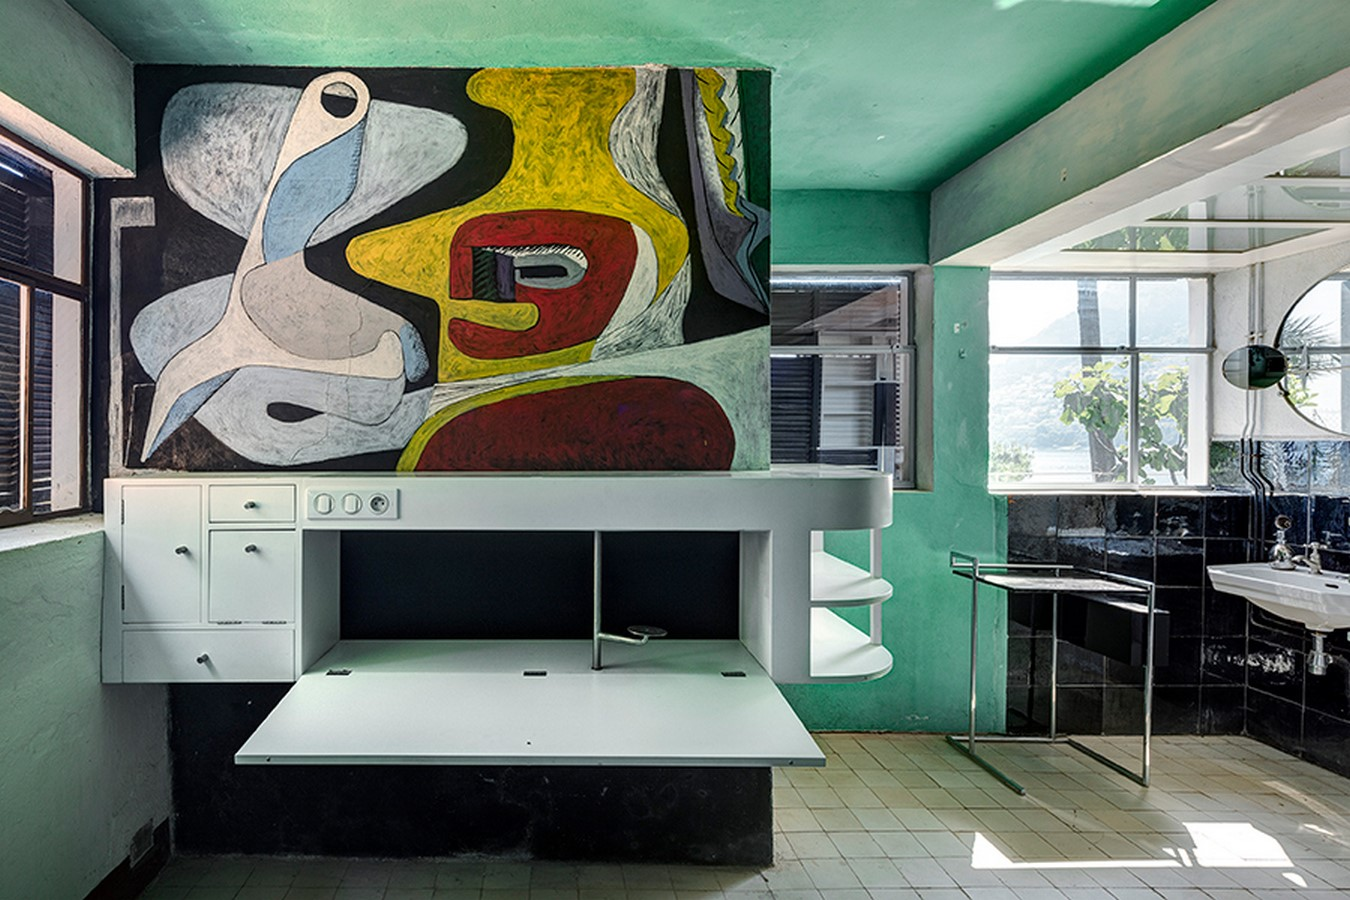 She accused Le Corbusier of vandalizing - Sheet1